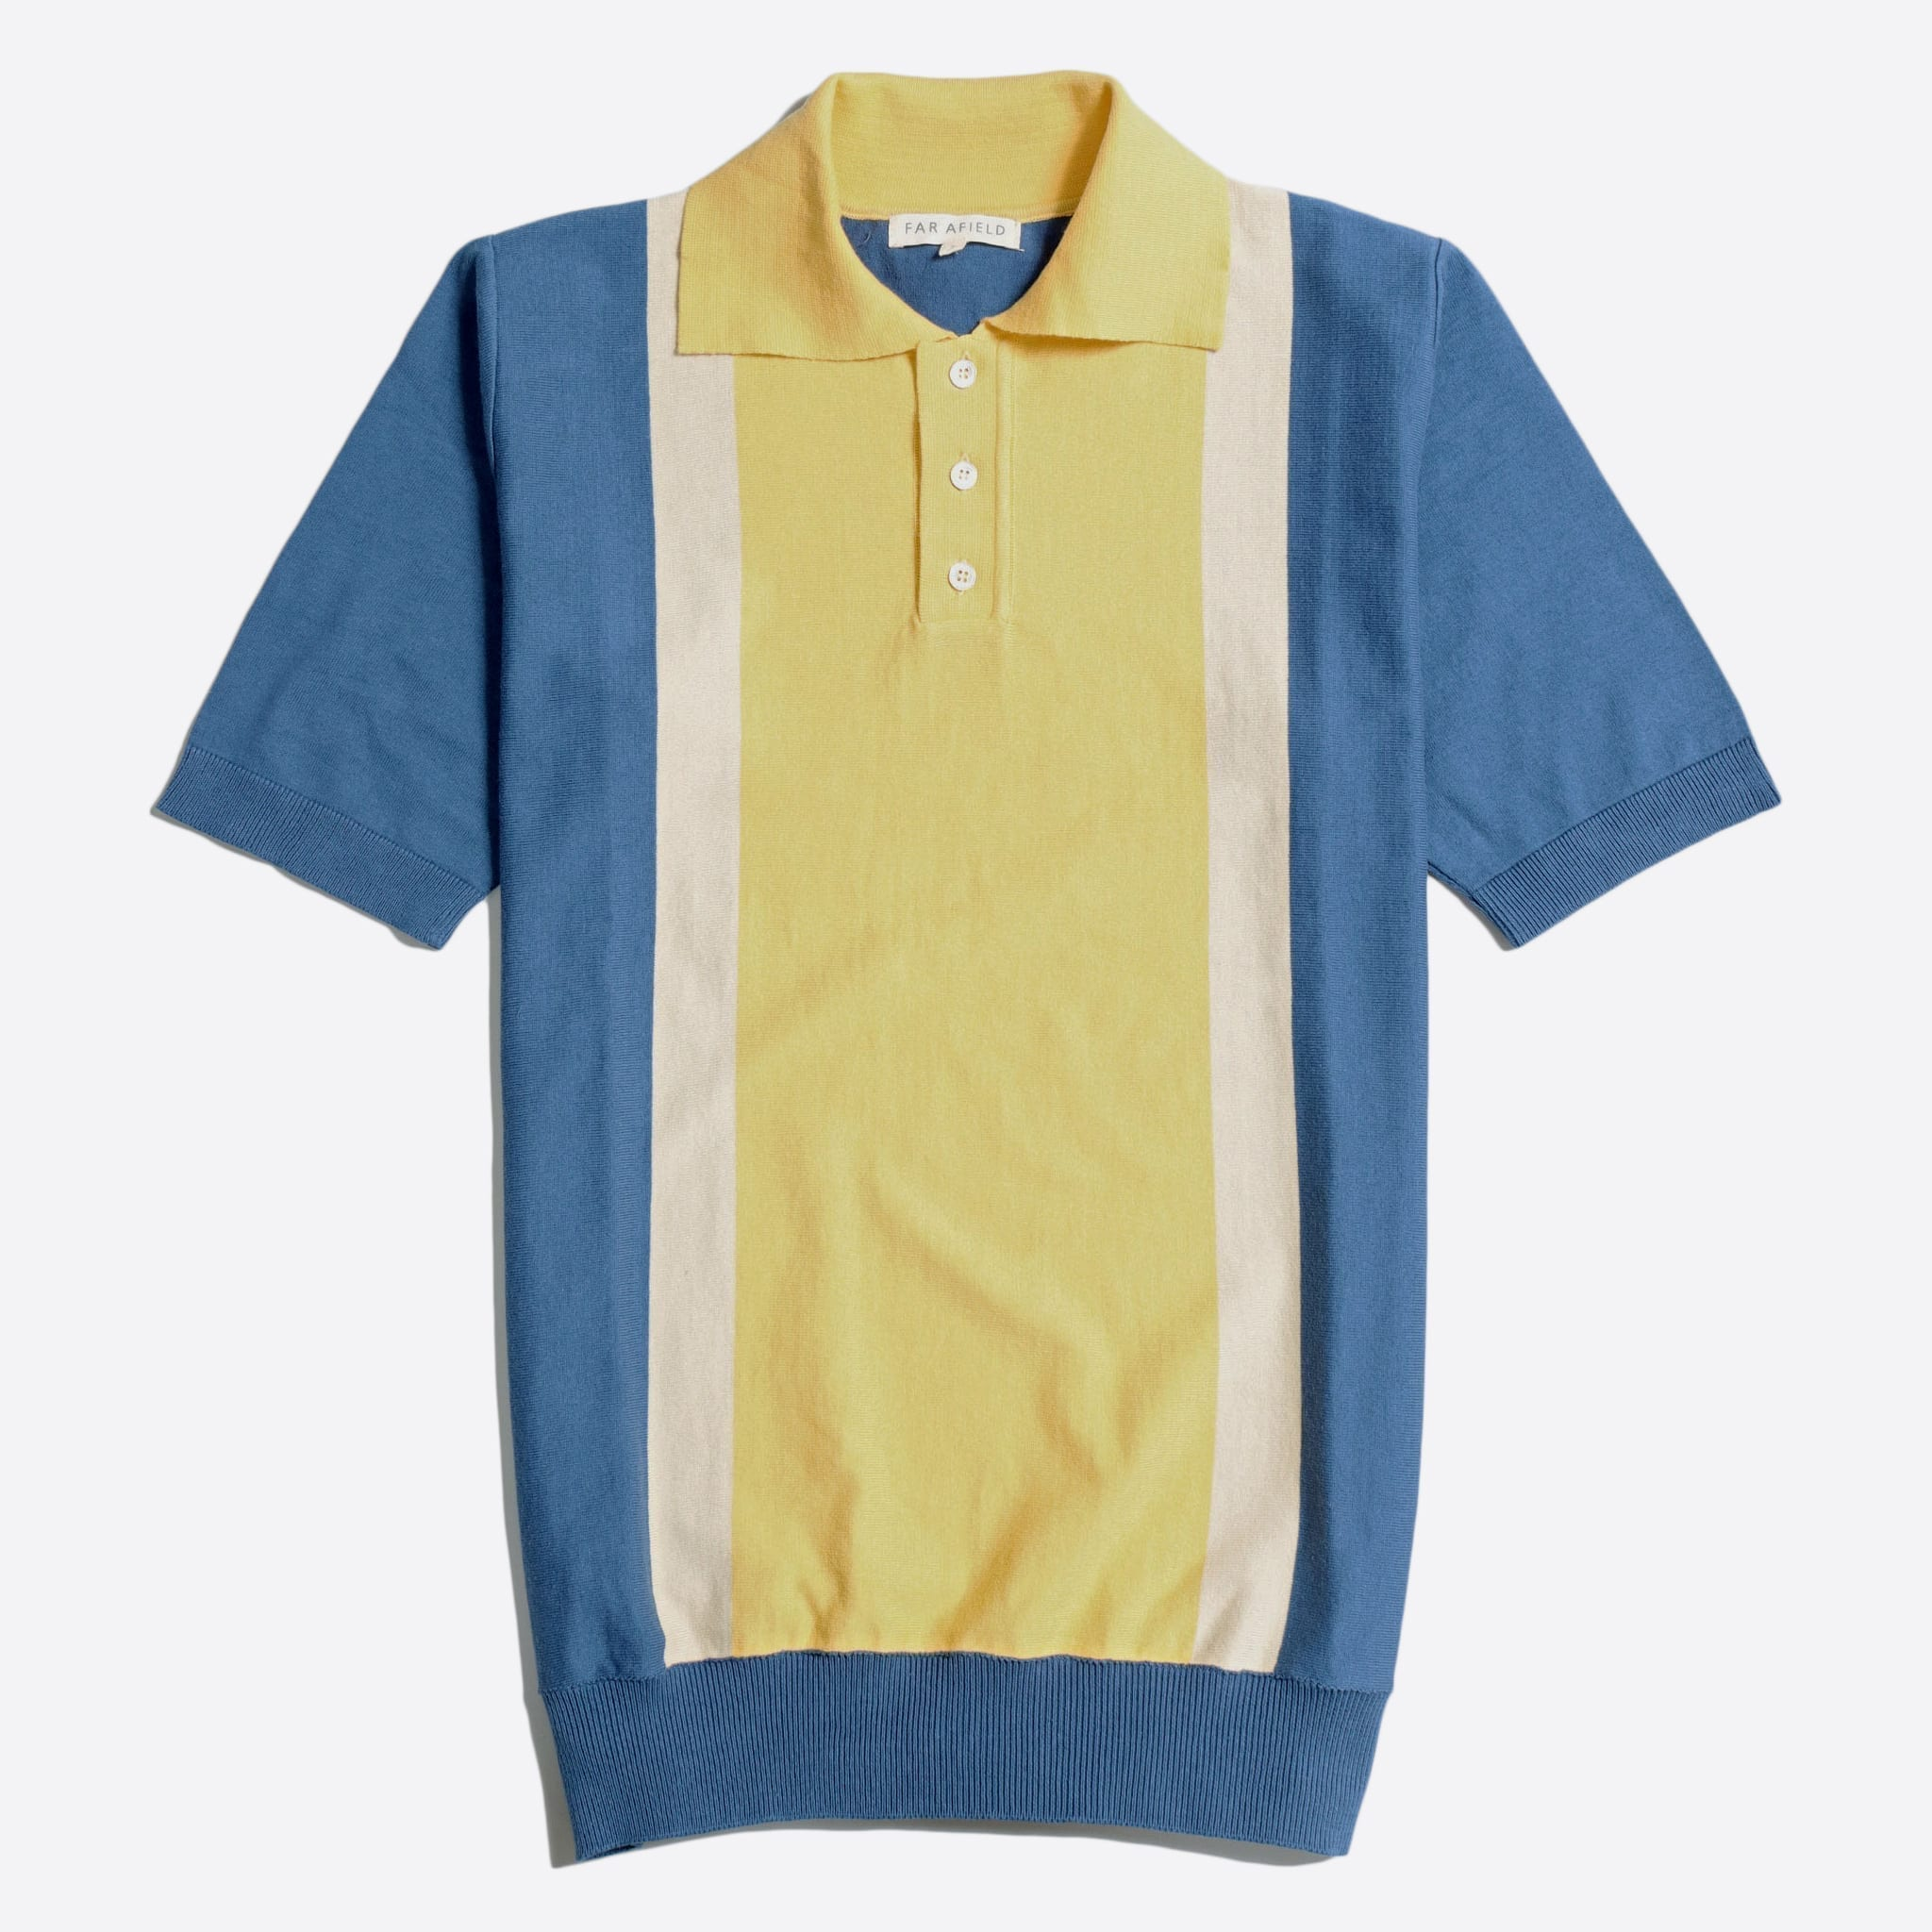 Far Afield Cole Trio Short Sleeve Polo a Ensign Blue/Cornsilk Yellow Organic Cotton FabricMid Century Inspired